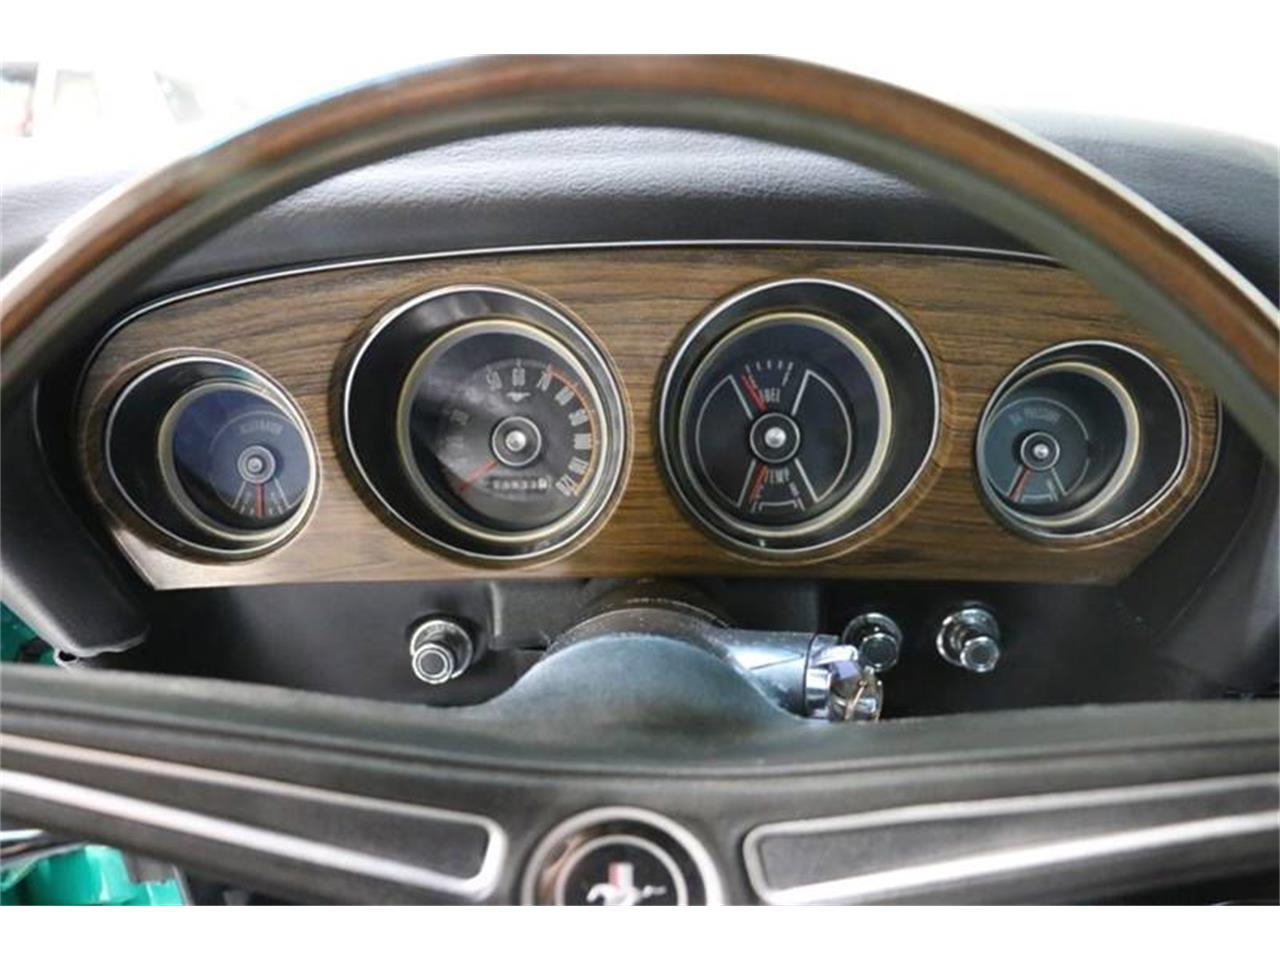 Large Picture of Classic 1970 Mustang - $49,995.00 - Q6NU